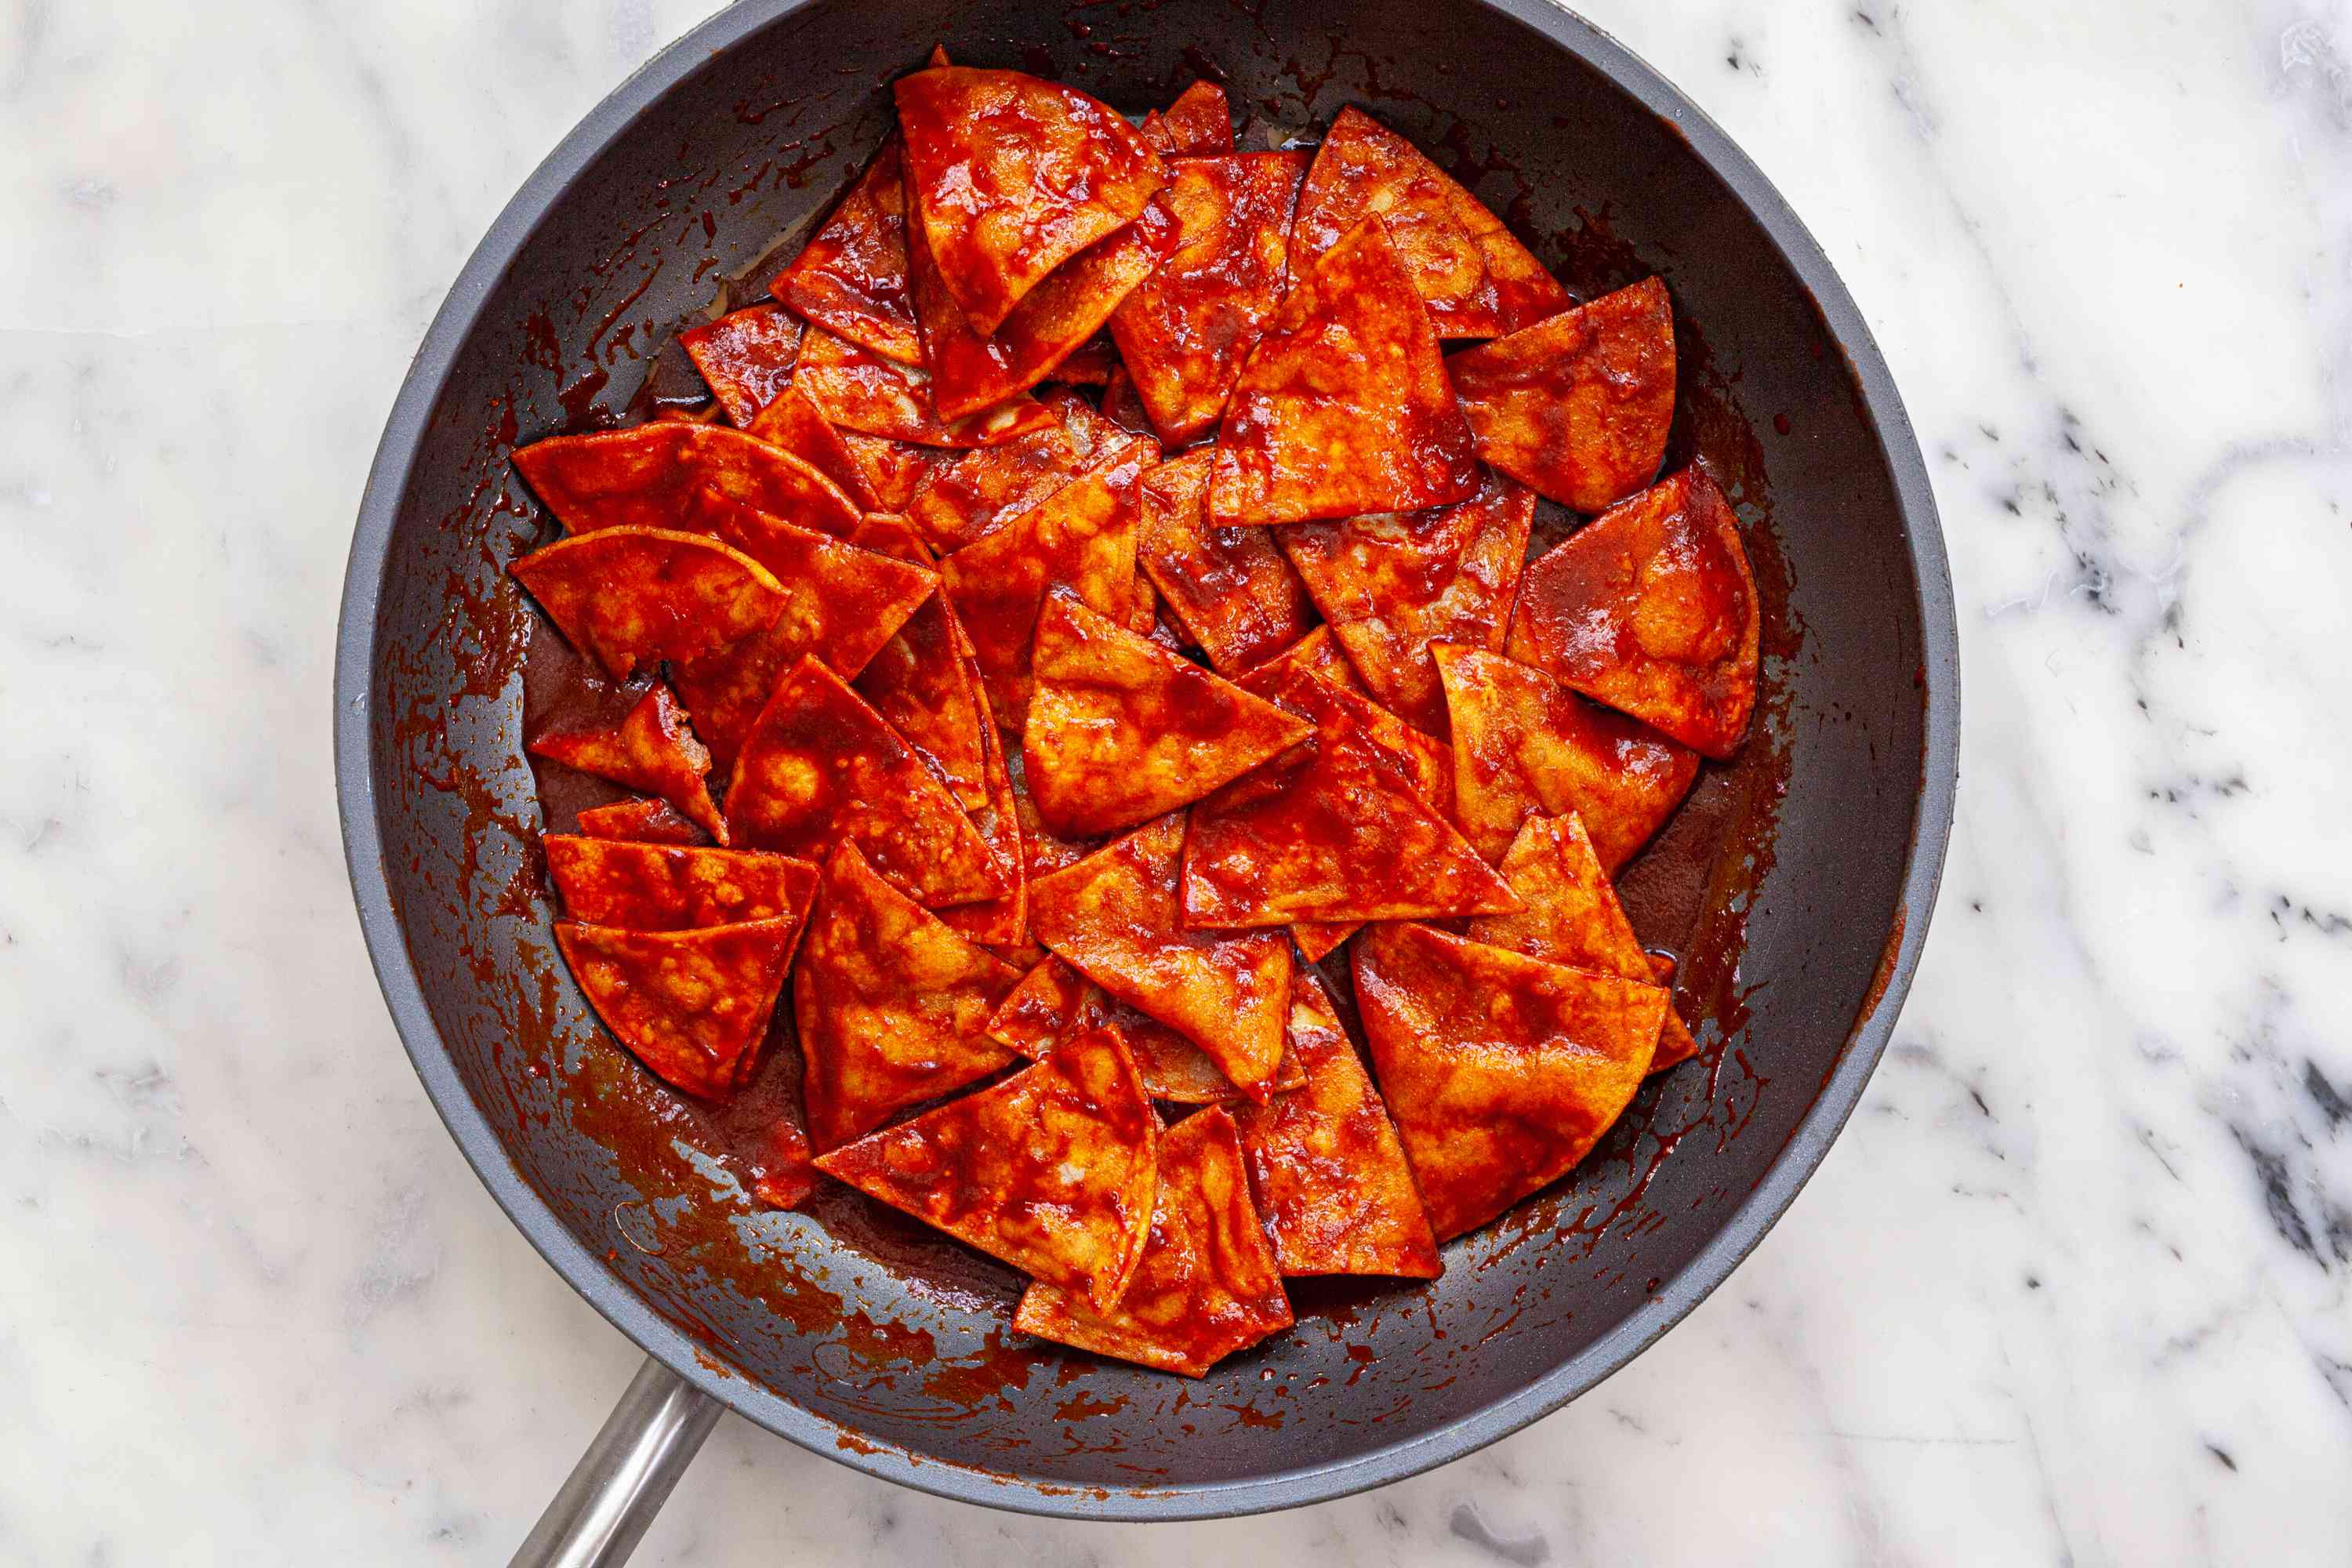 Chips and sauce in a skillet to show how to make chilaquiles.